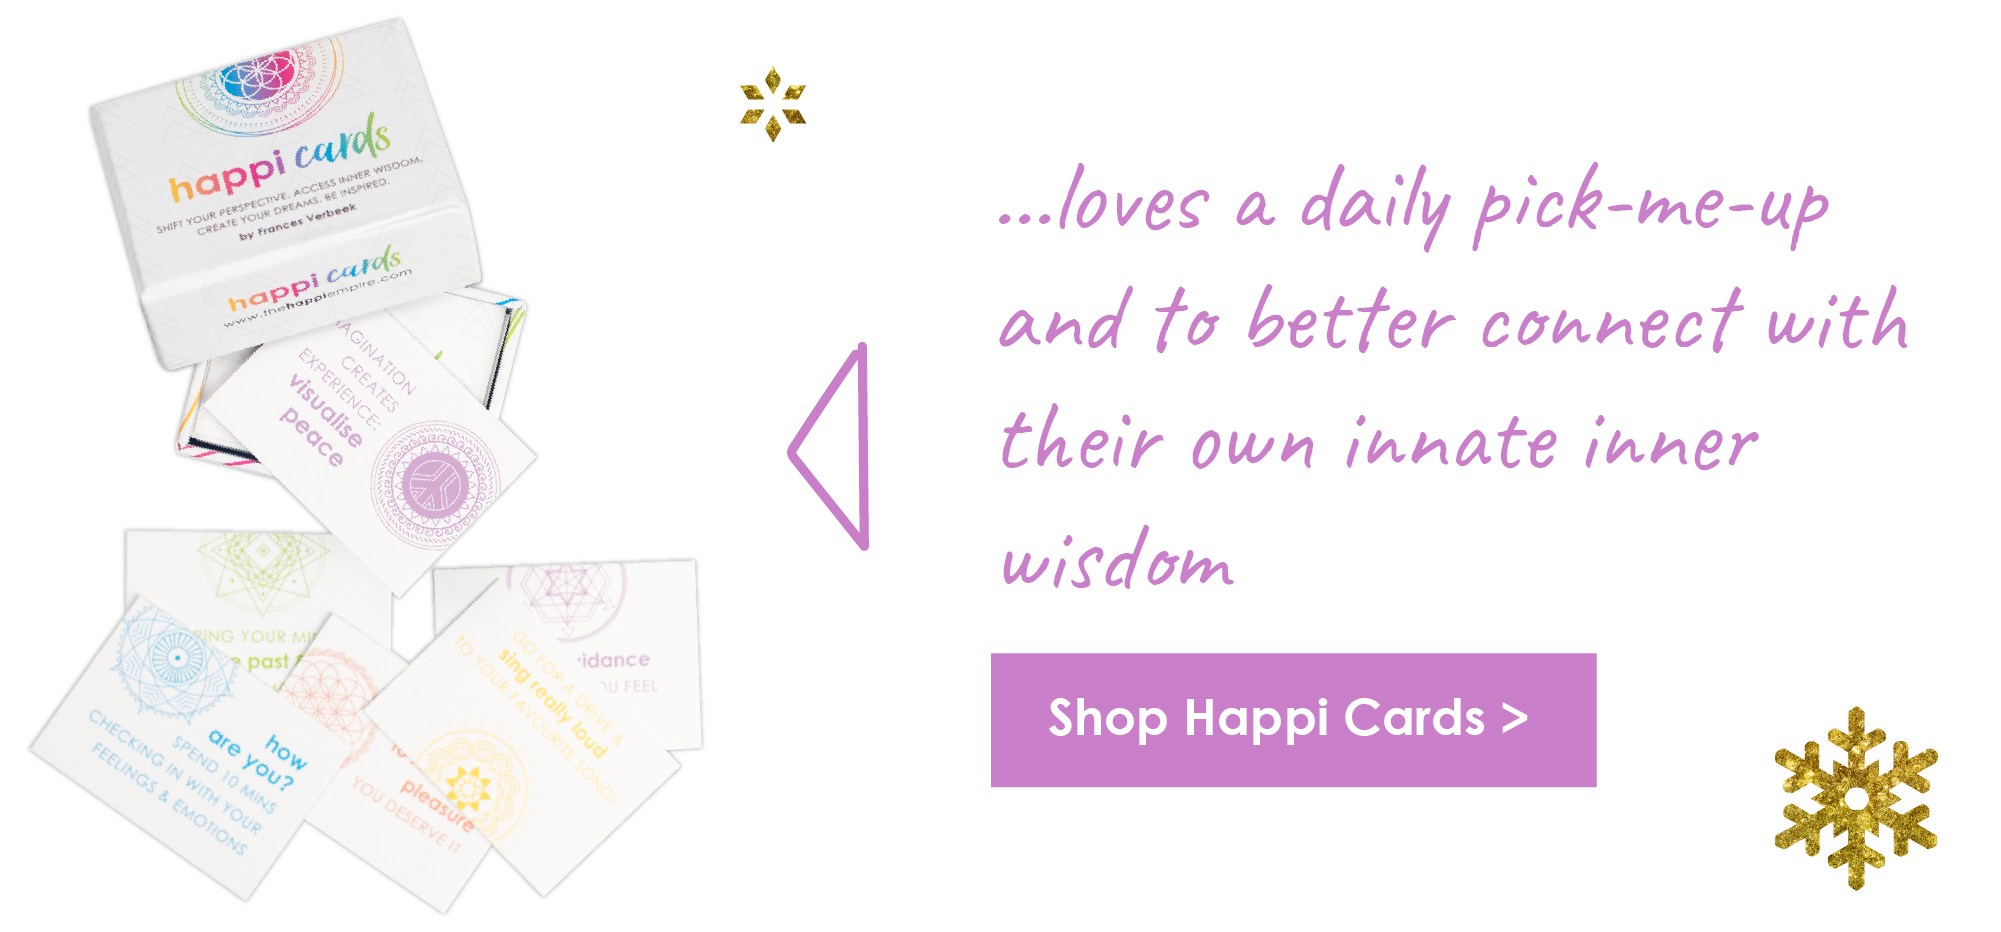 Shop Happi Cards